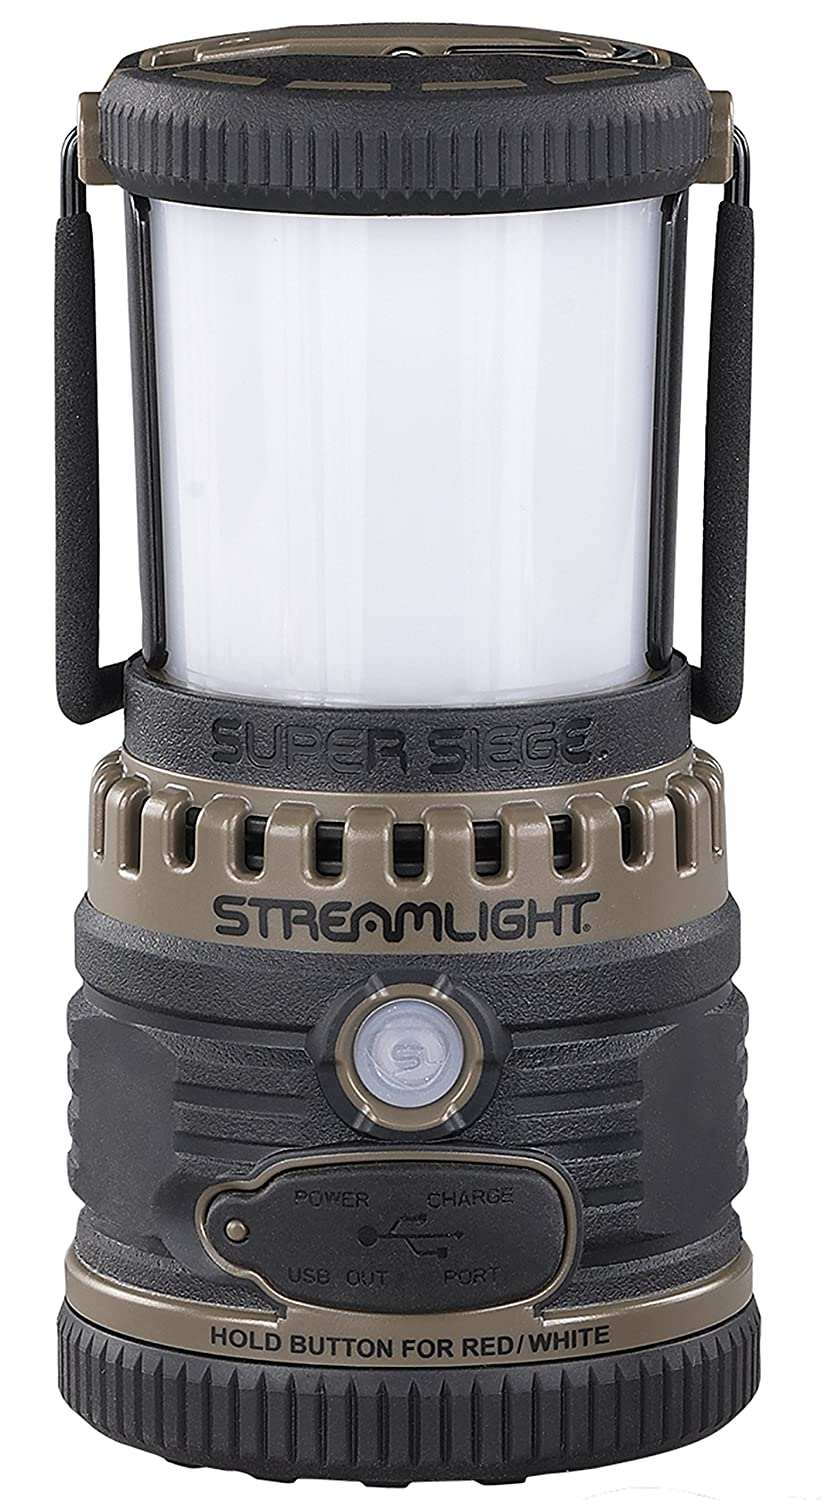 Streamlight 44947 Super Siege 120V AC, Rechargeable and Portable USB Charger, Coyote – 1,100 Lumen